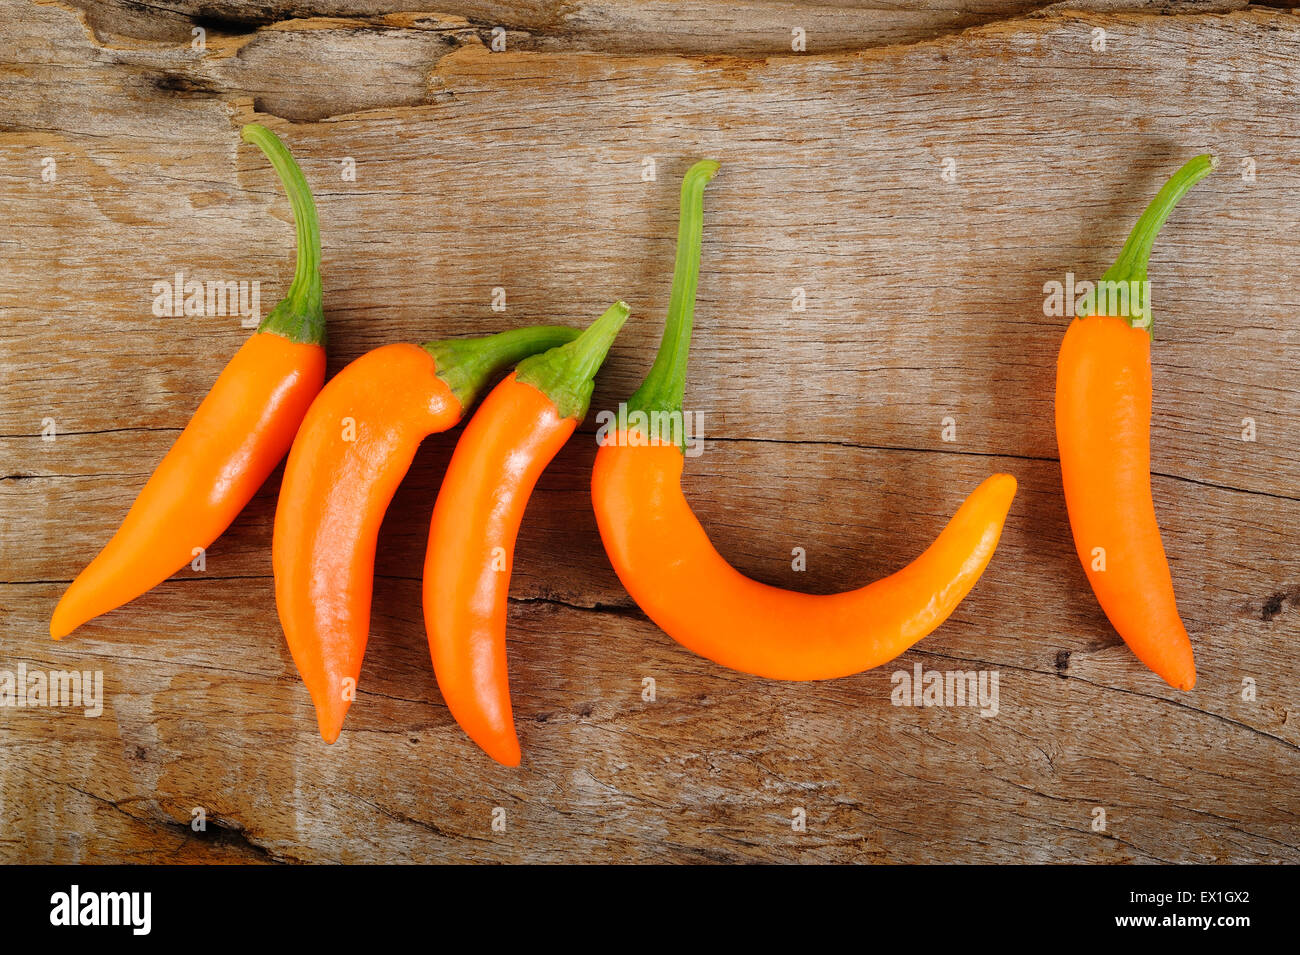 hot chili peppers on old wooden table - Stock Image